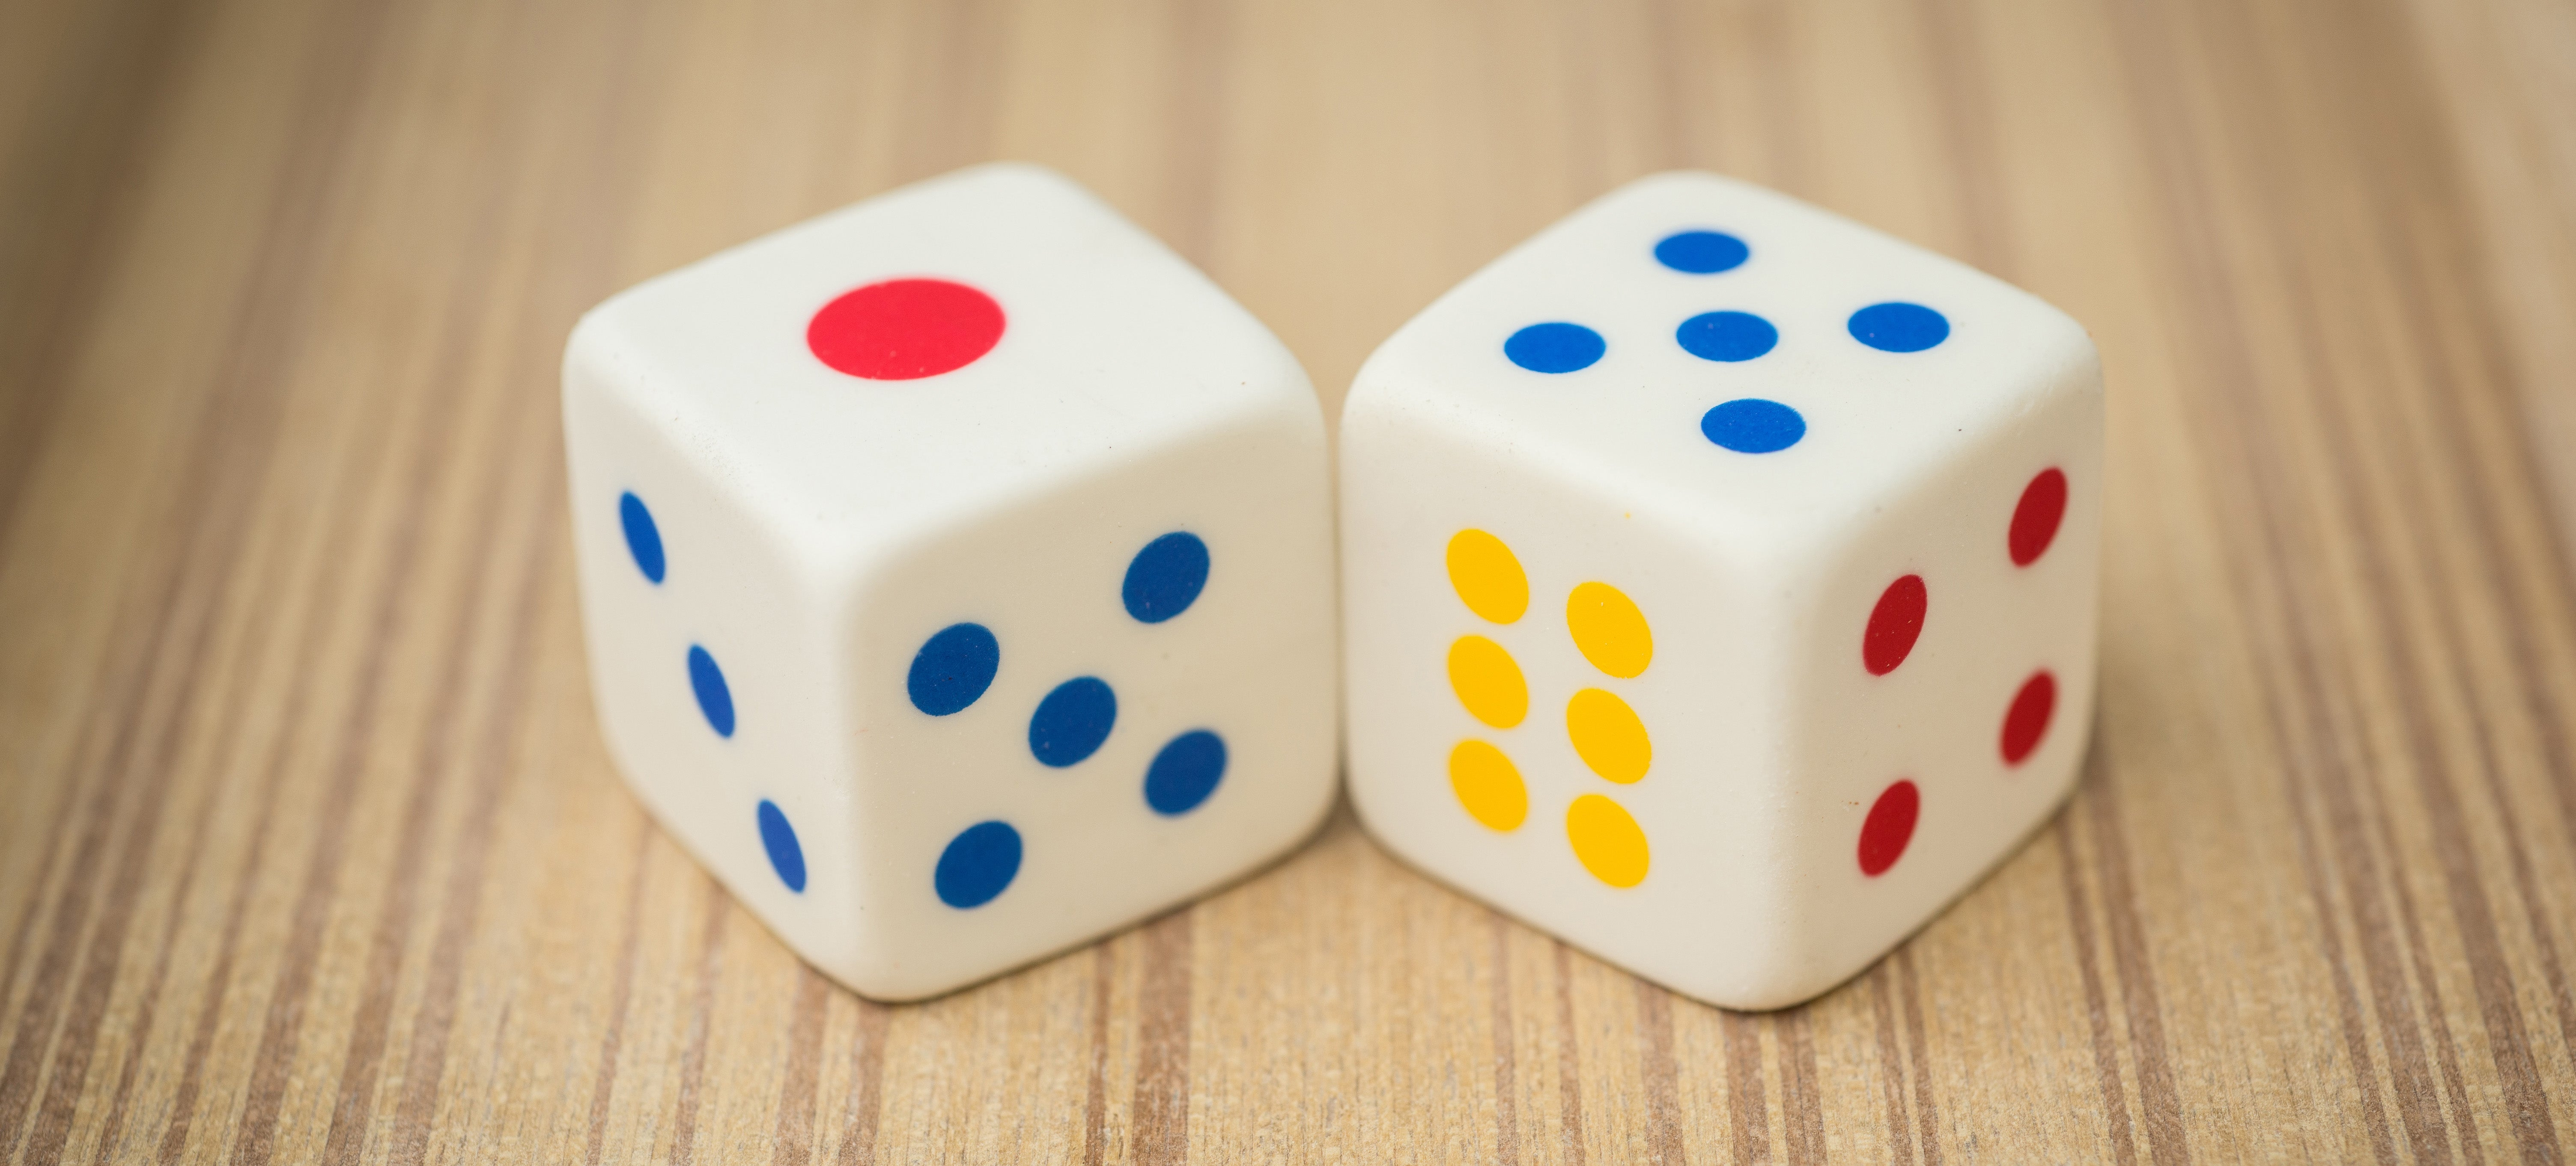 Create An Ultra-Secure, Easy-To-Remember Passphrase Using Dice